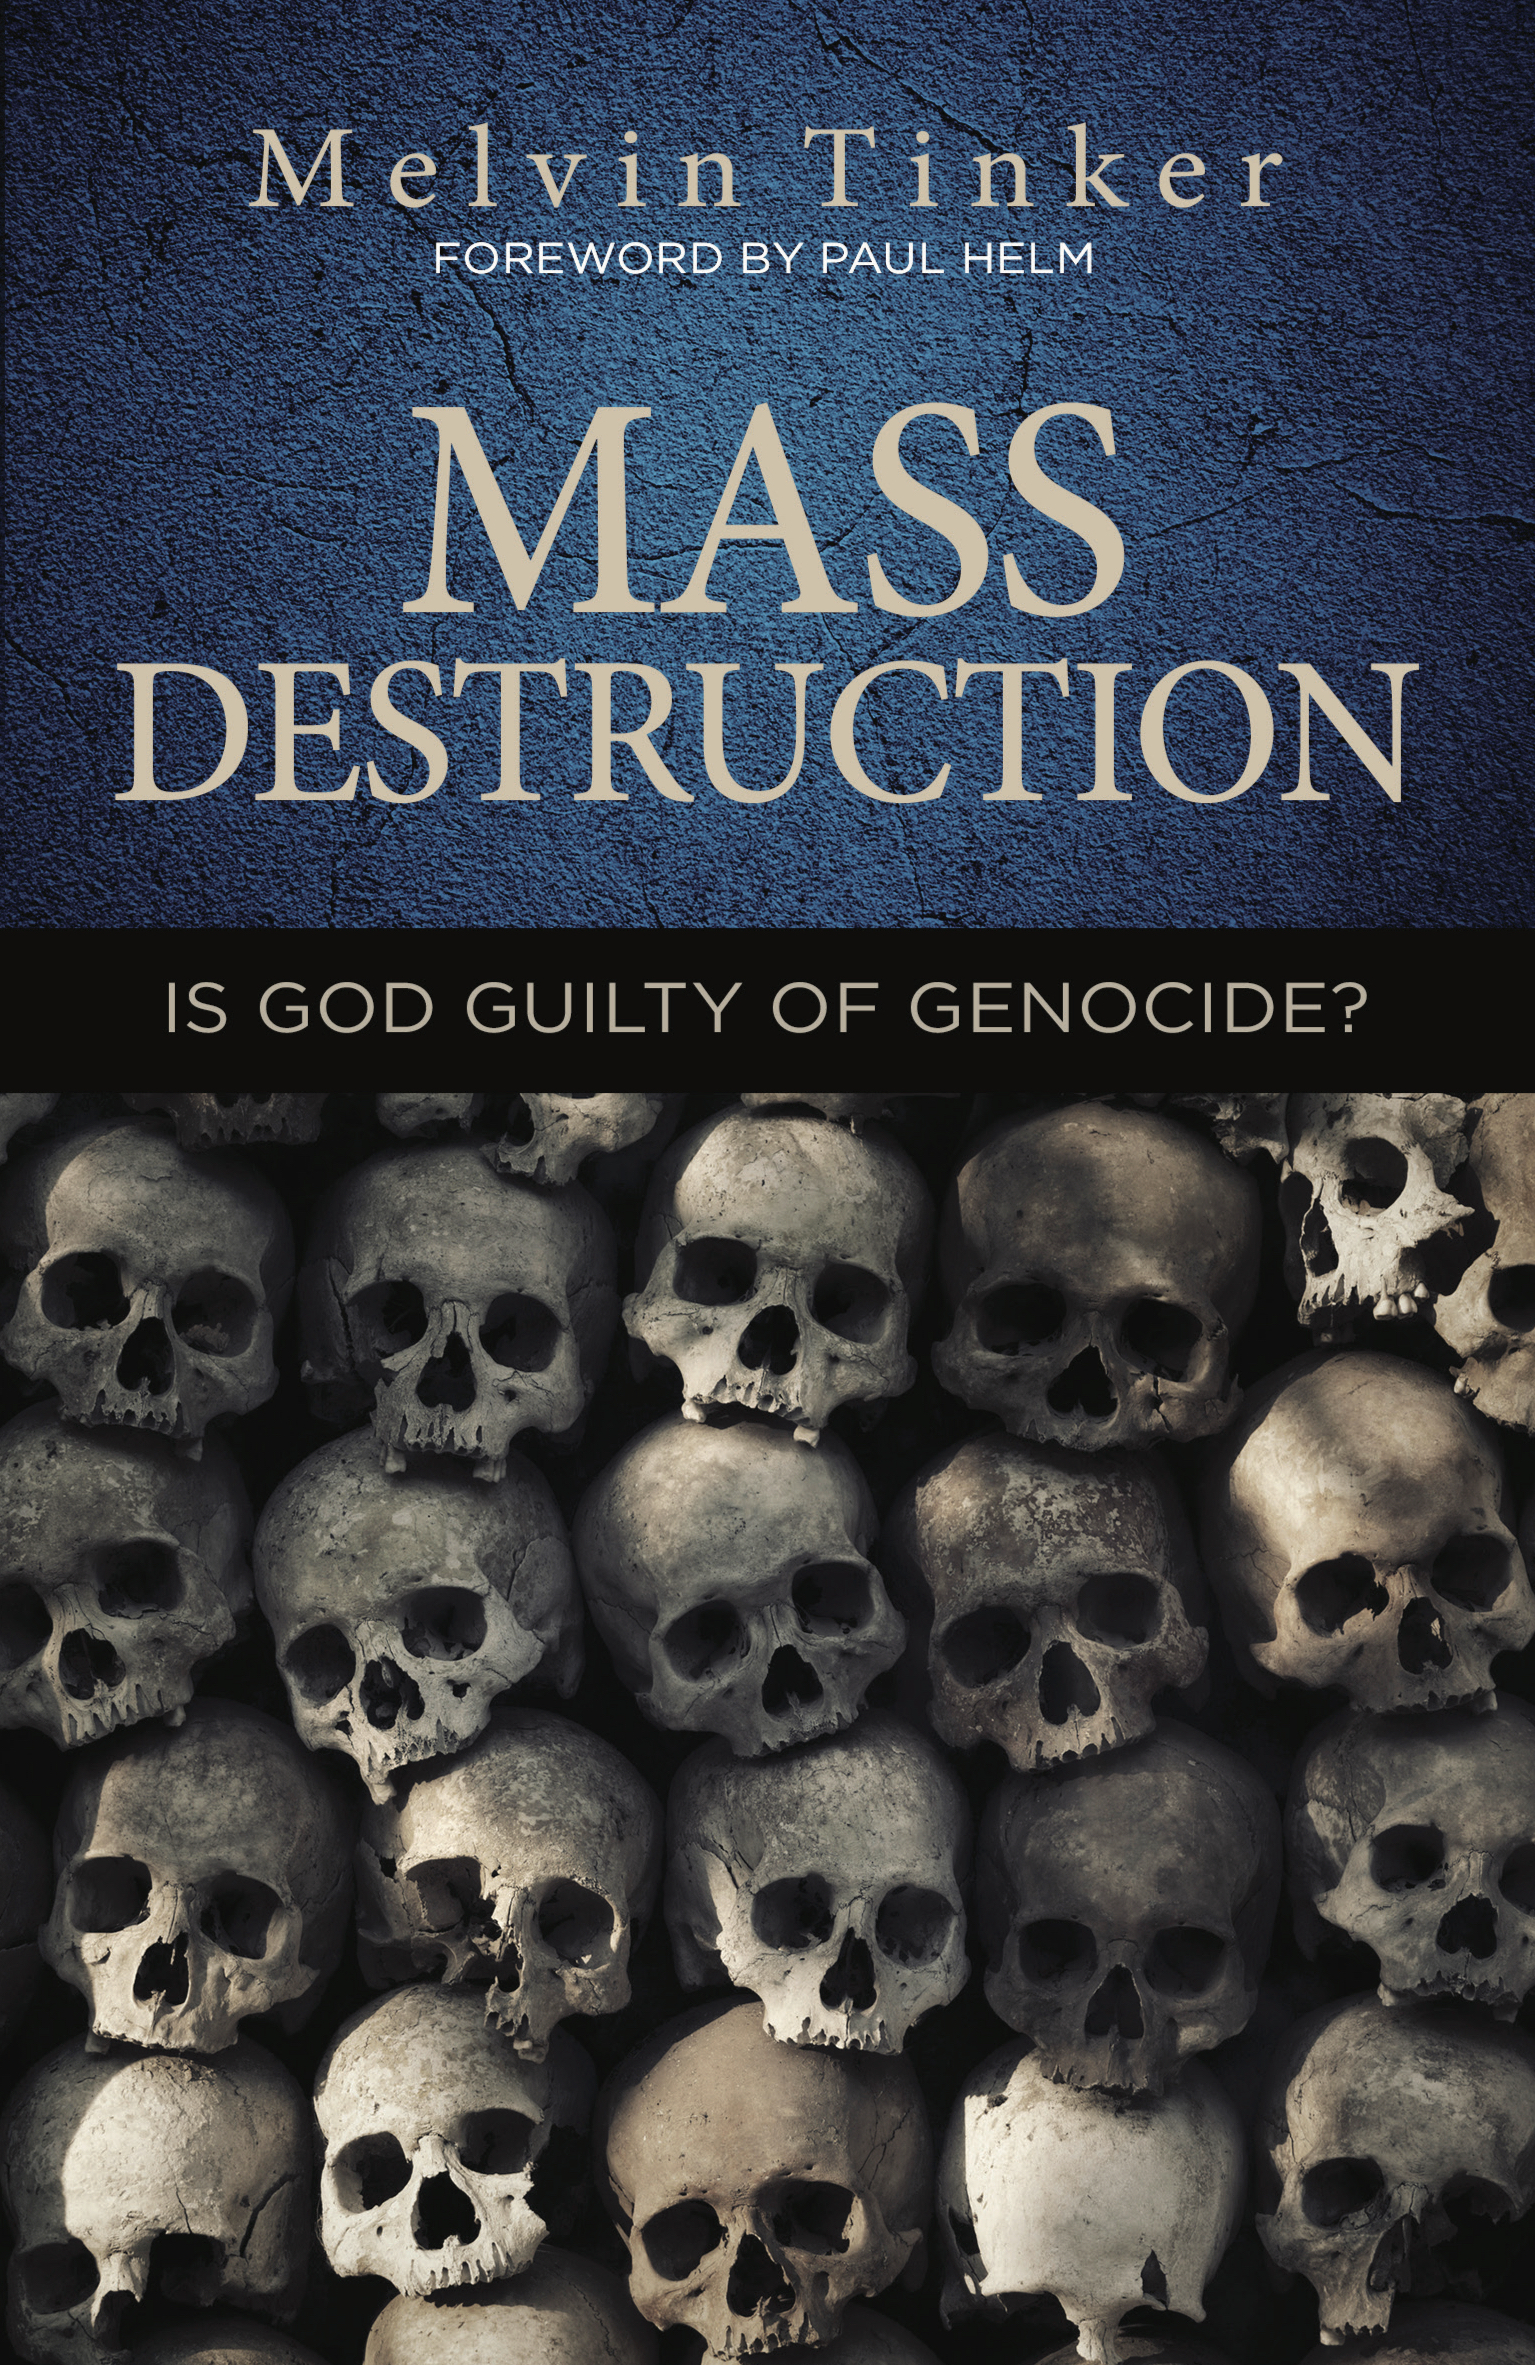 Ep Books The Store For Books: Mass Destruction By Melvin Tinker